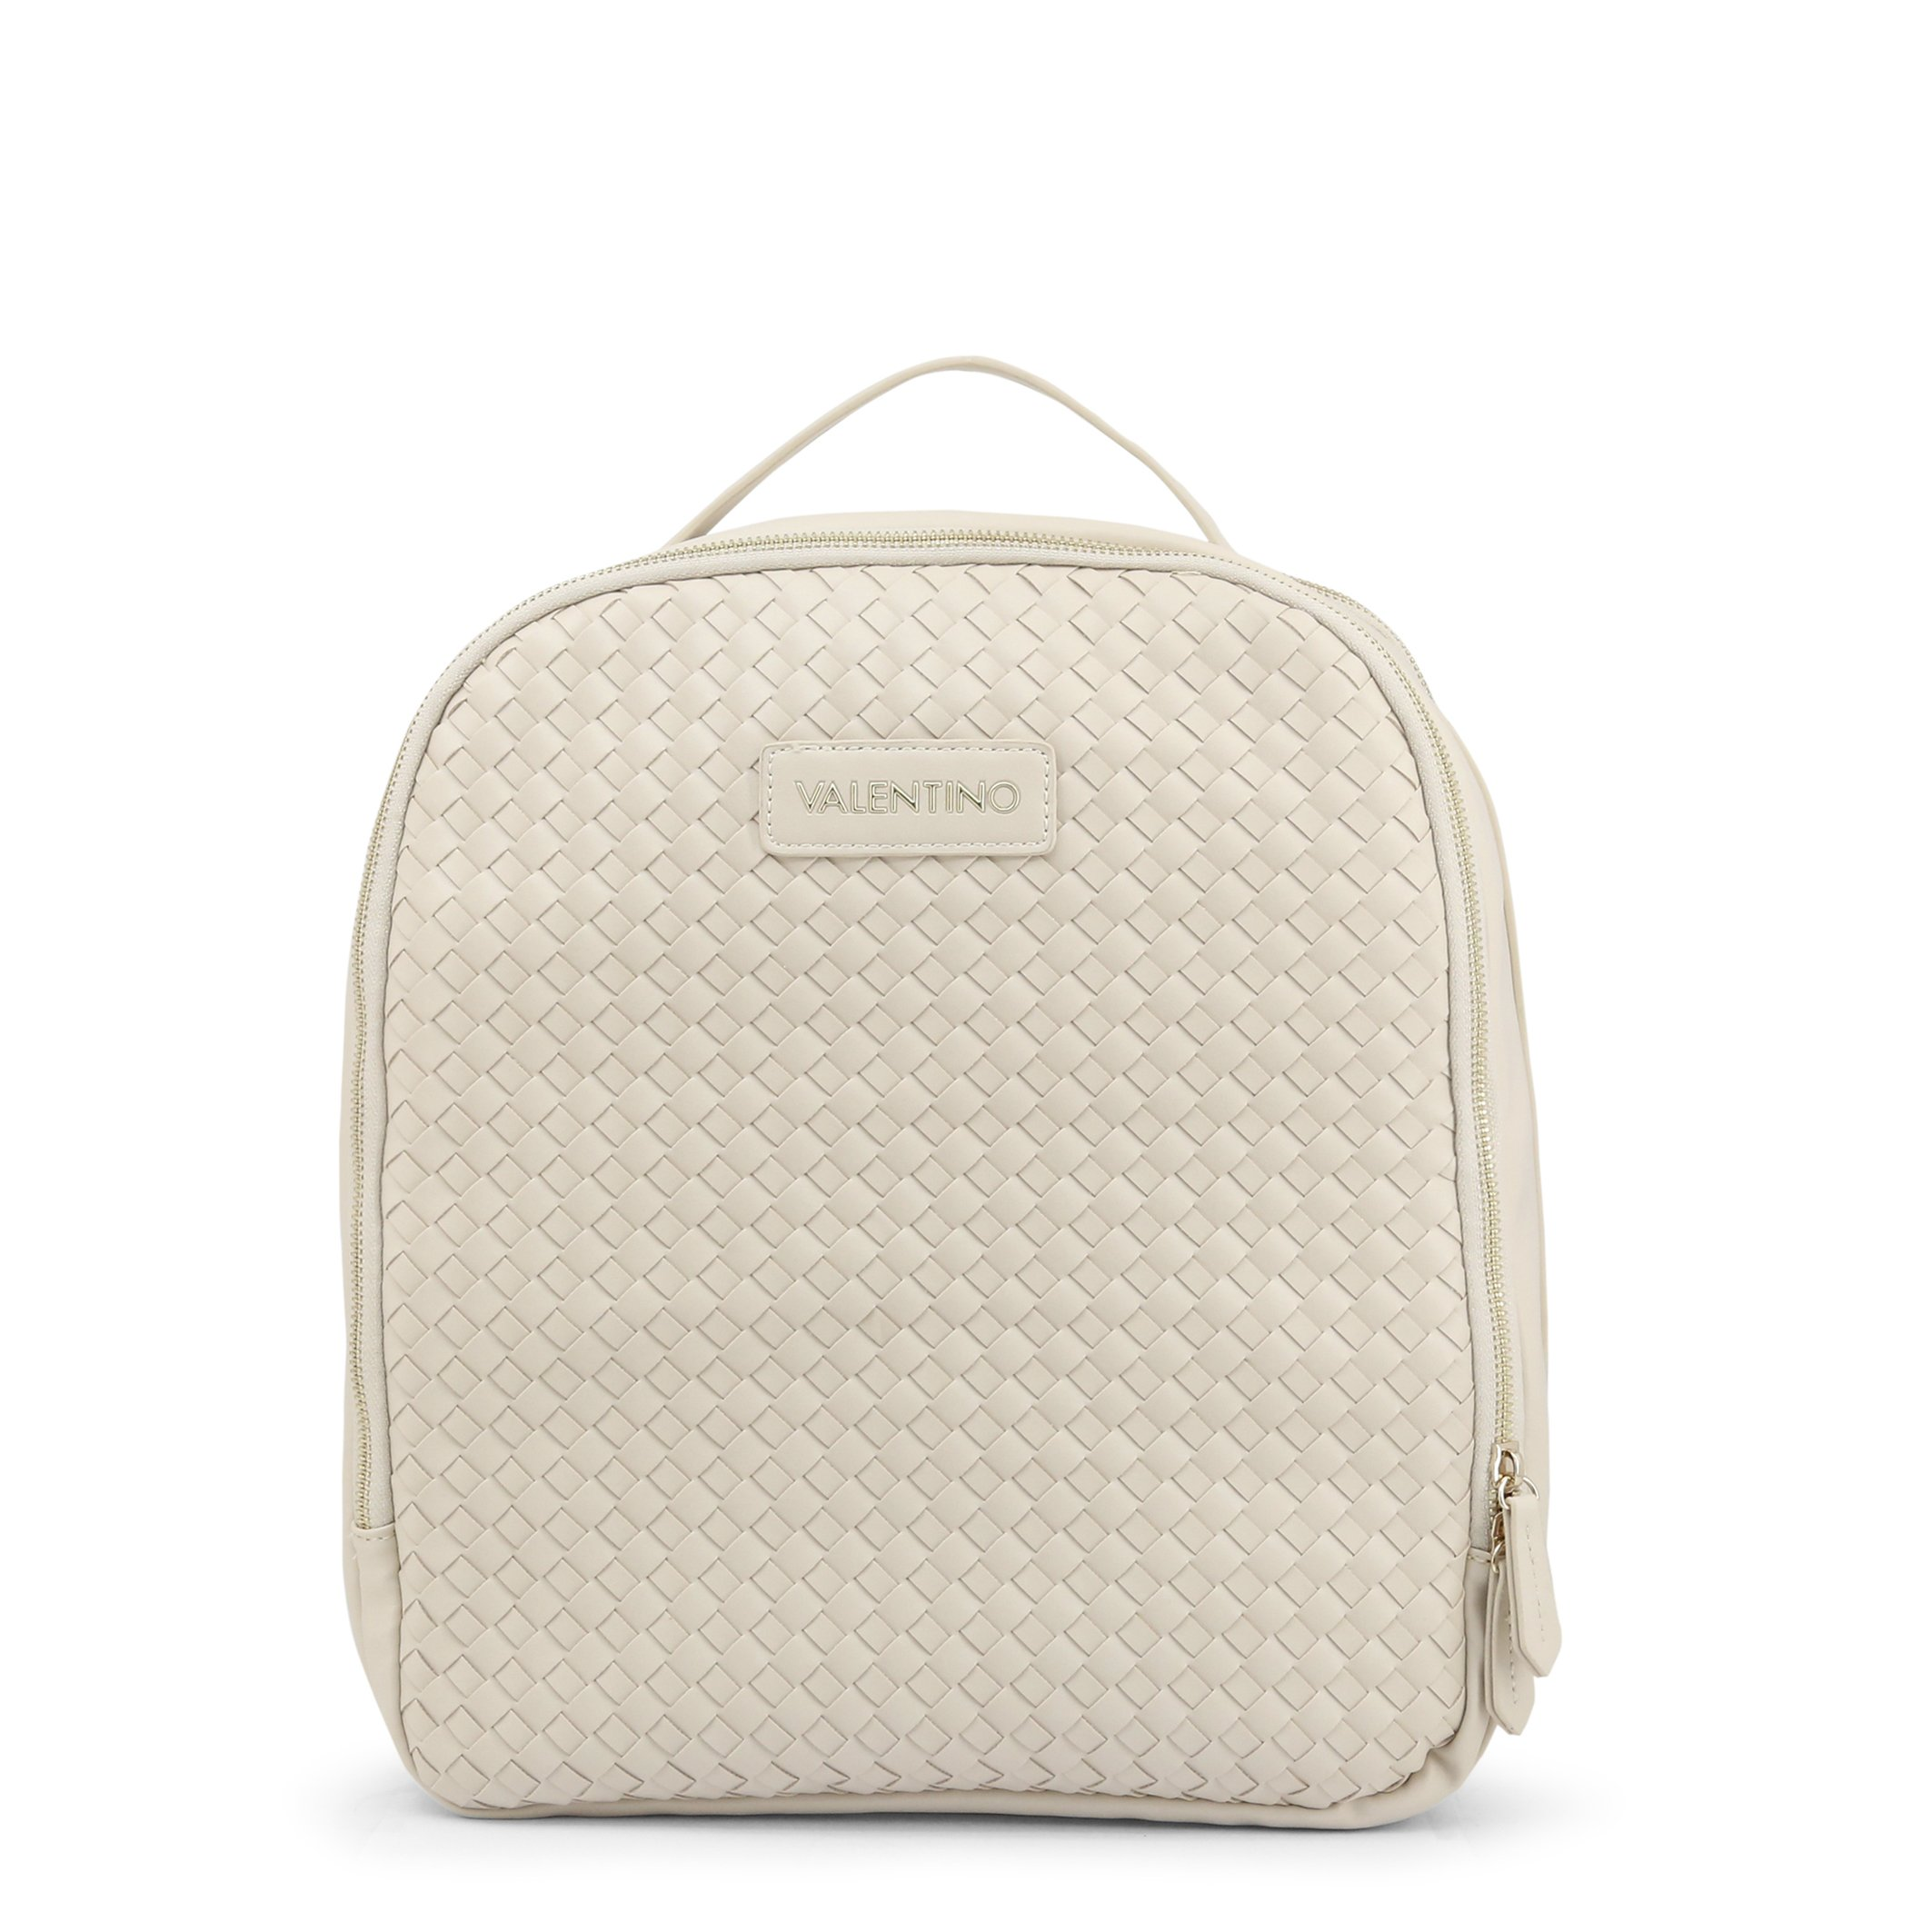 Valentino by Mario Valentino Women's Backpack Various Colours DOXY-VBS3WV03I - white NOSIZE